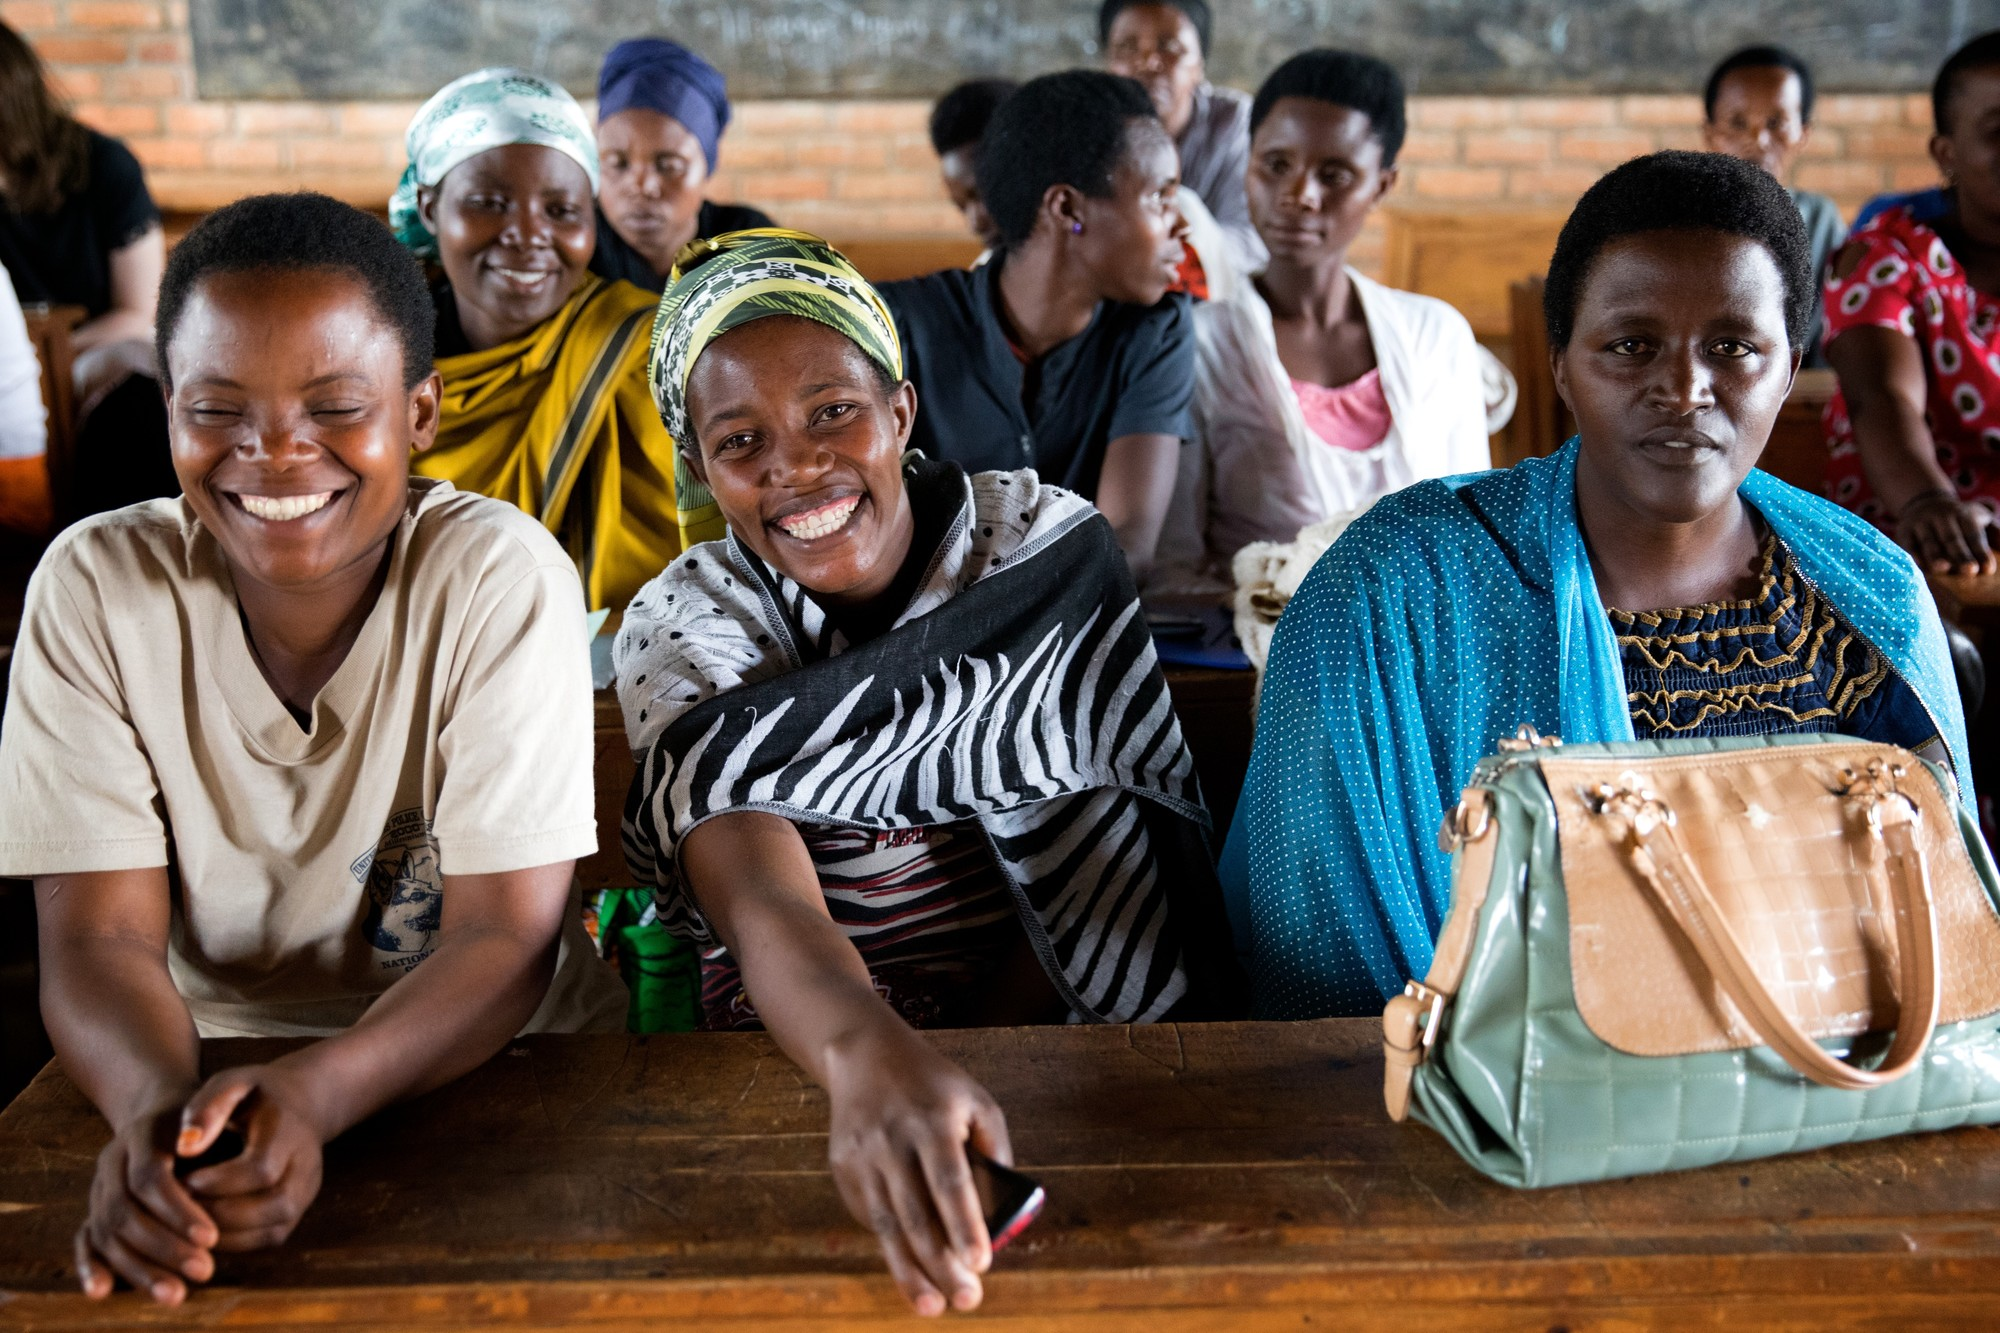 Women for Women International Rwanda class - Image by Rada Akbar